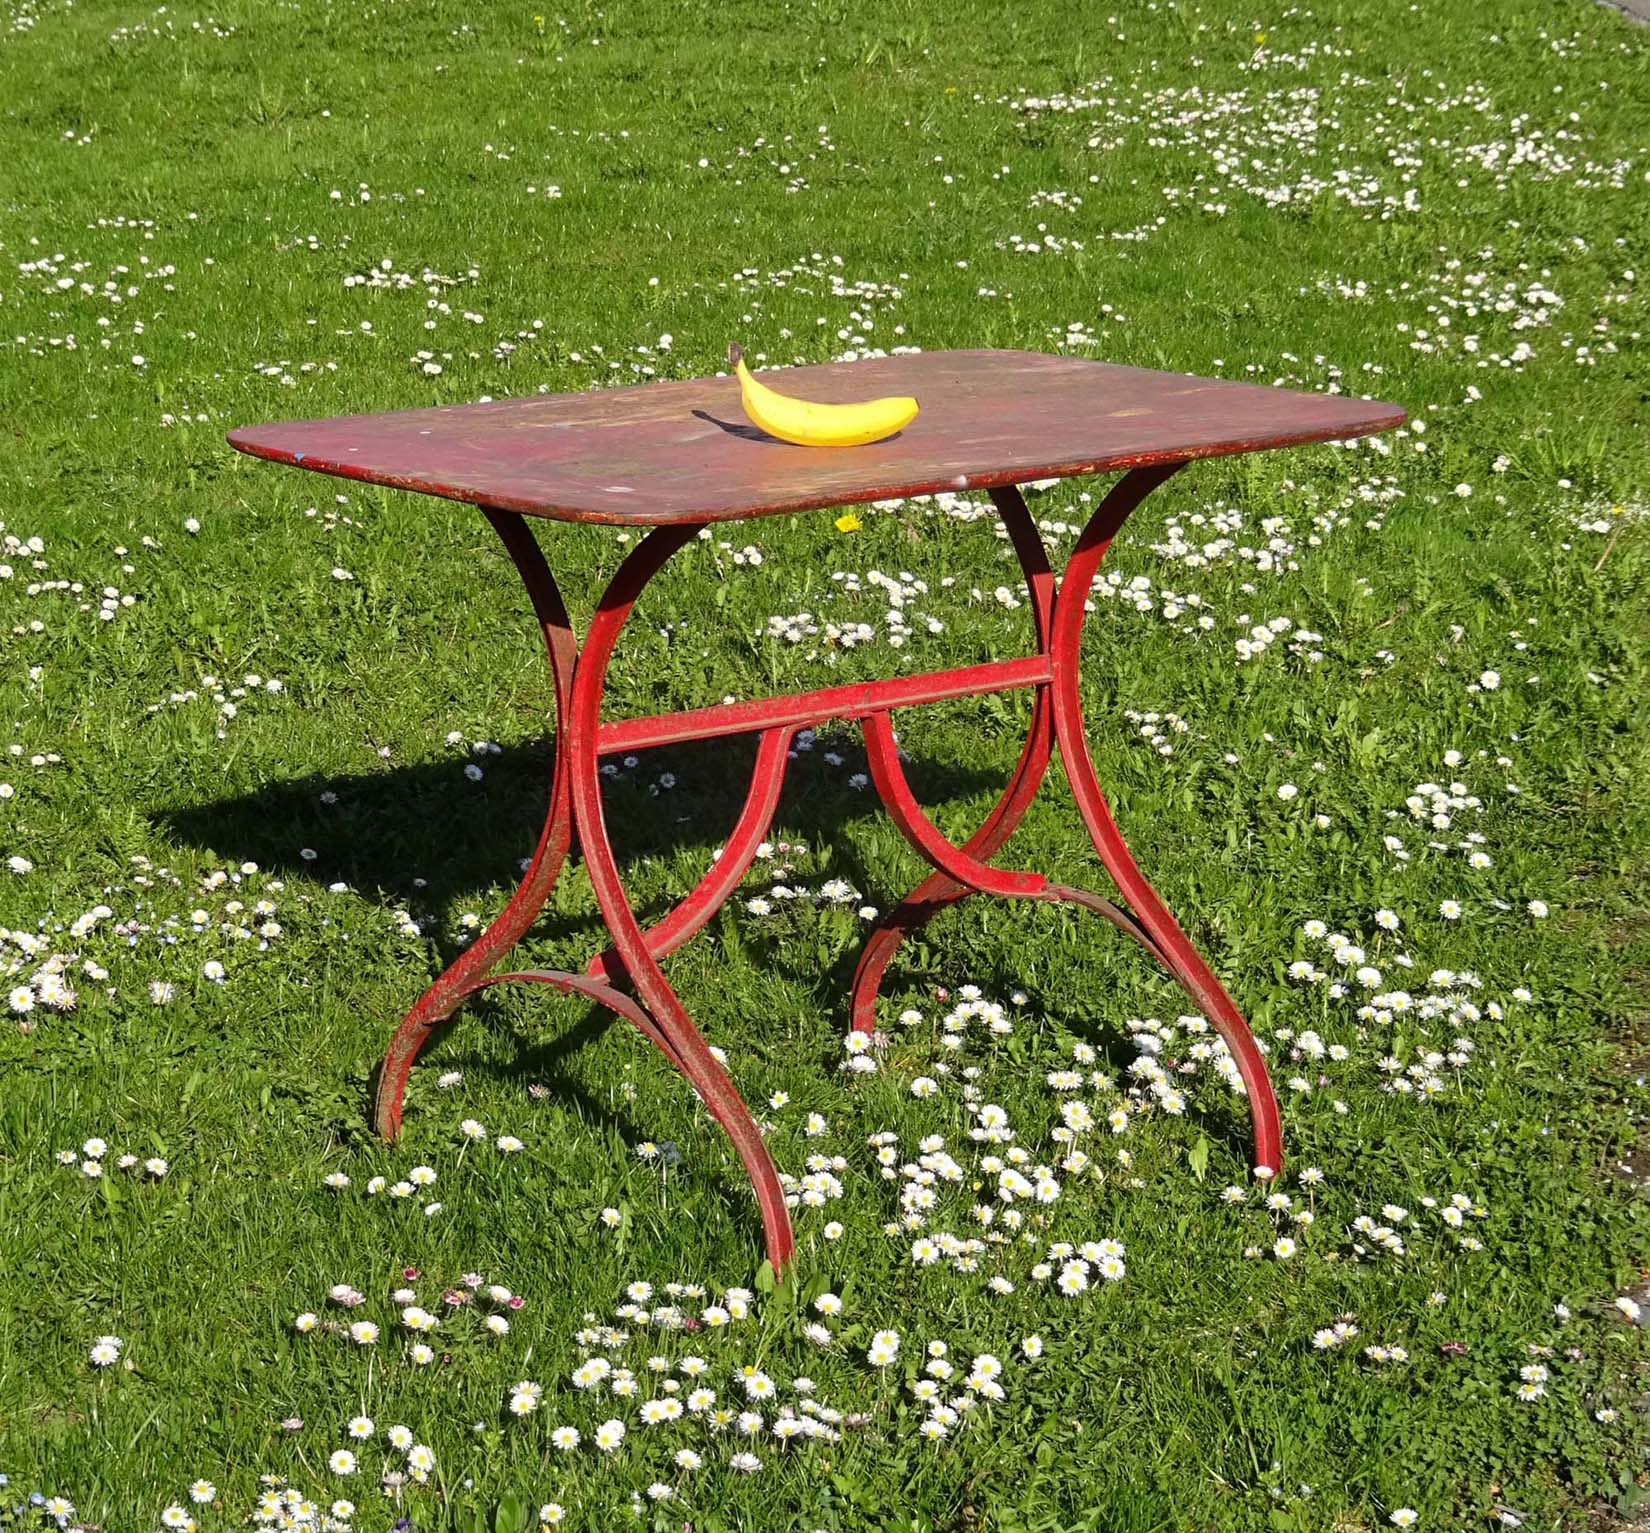 Emejing table de jardin ronde suisse pictures awesome - Table de jardin ronde pas cher ...